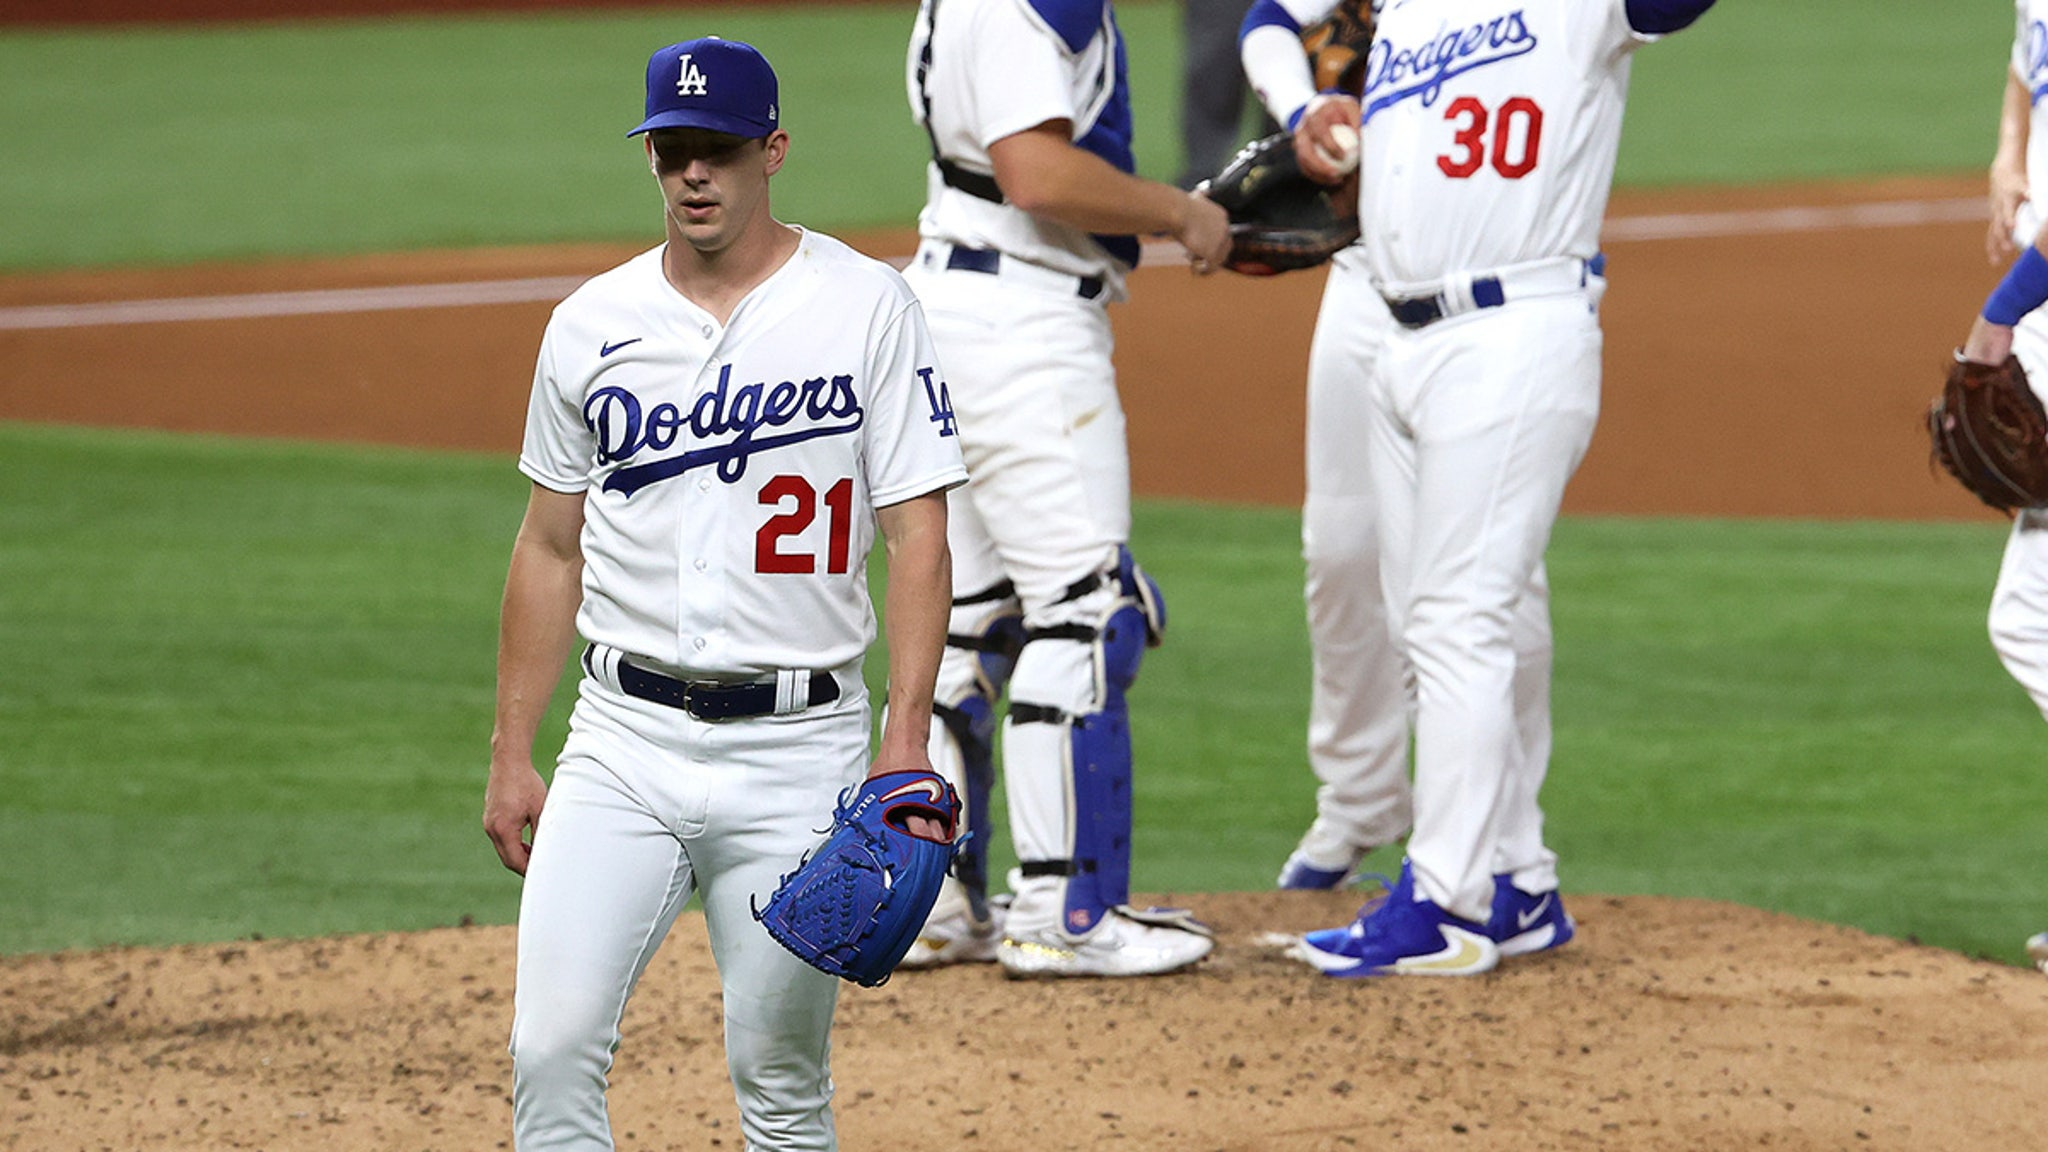 Dodgers' Walker Buehler Suffocates Legs In Super Tight Pants ... What's the Deal, Bro?!